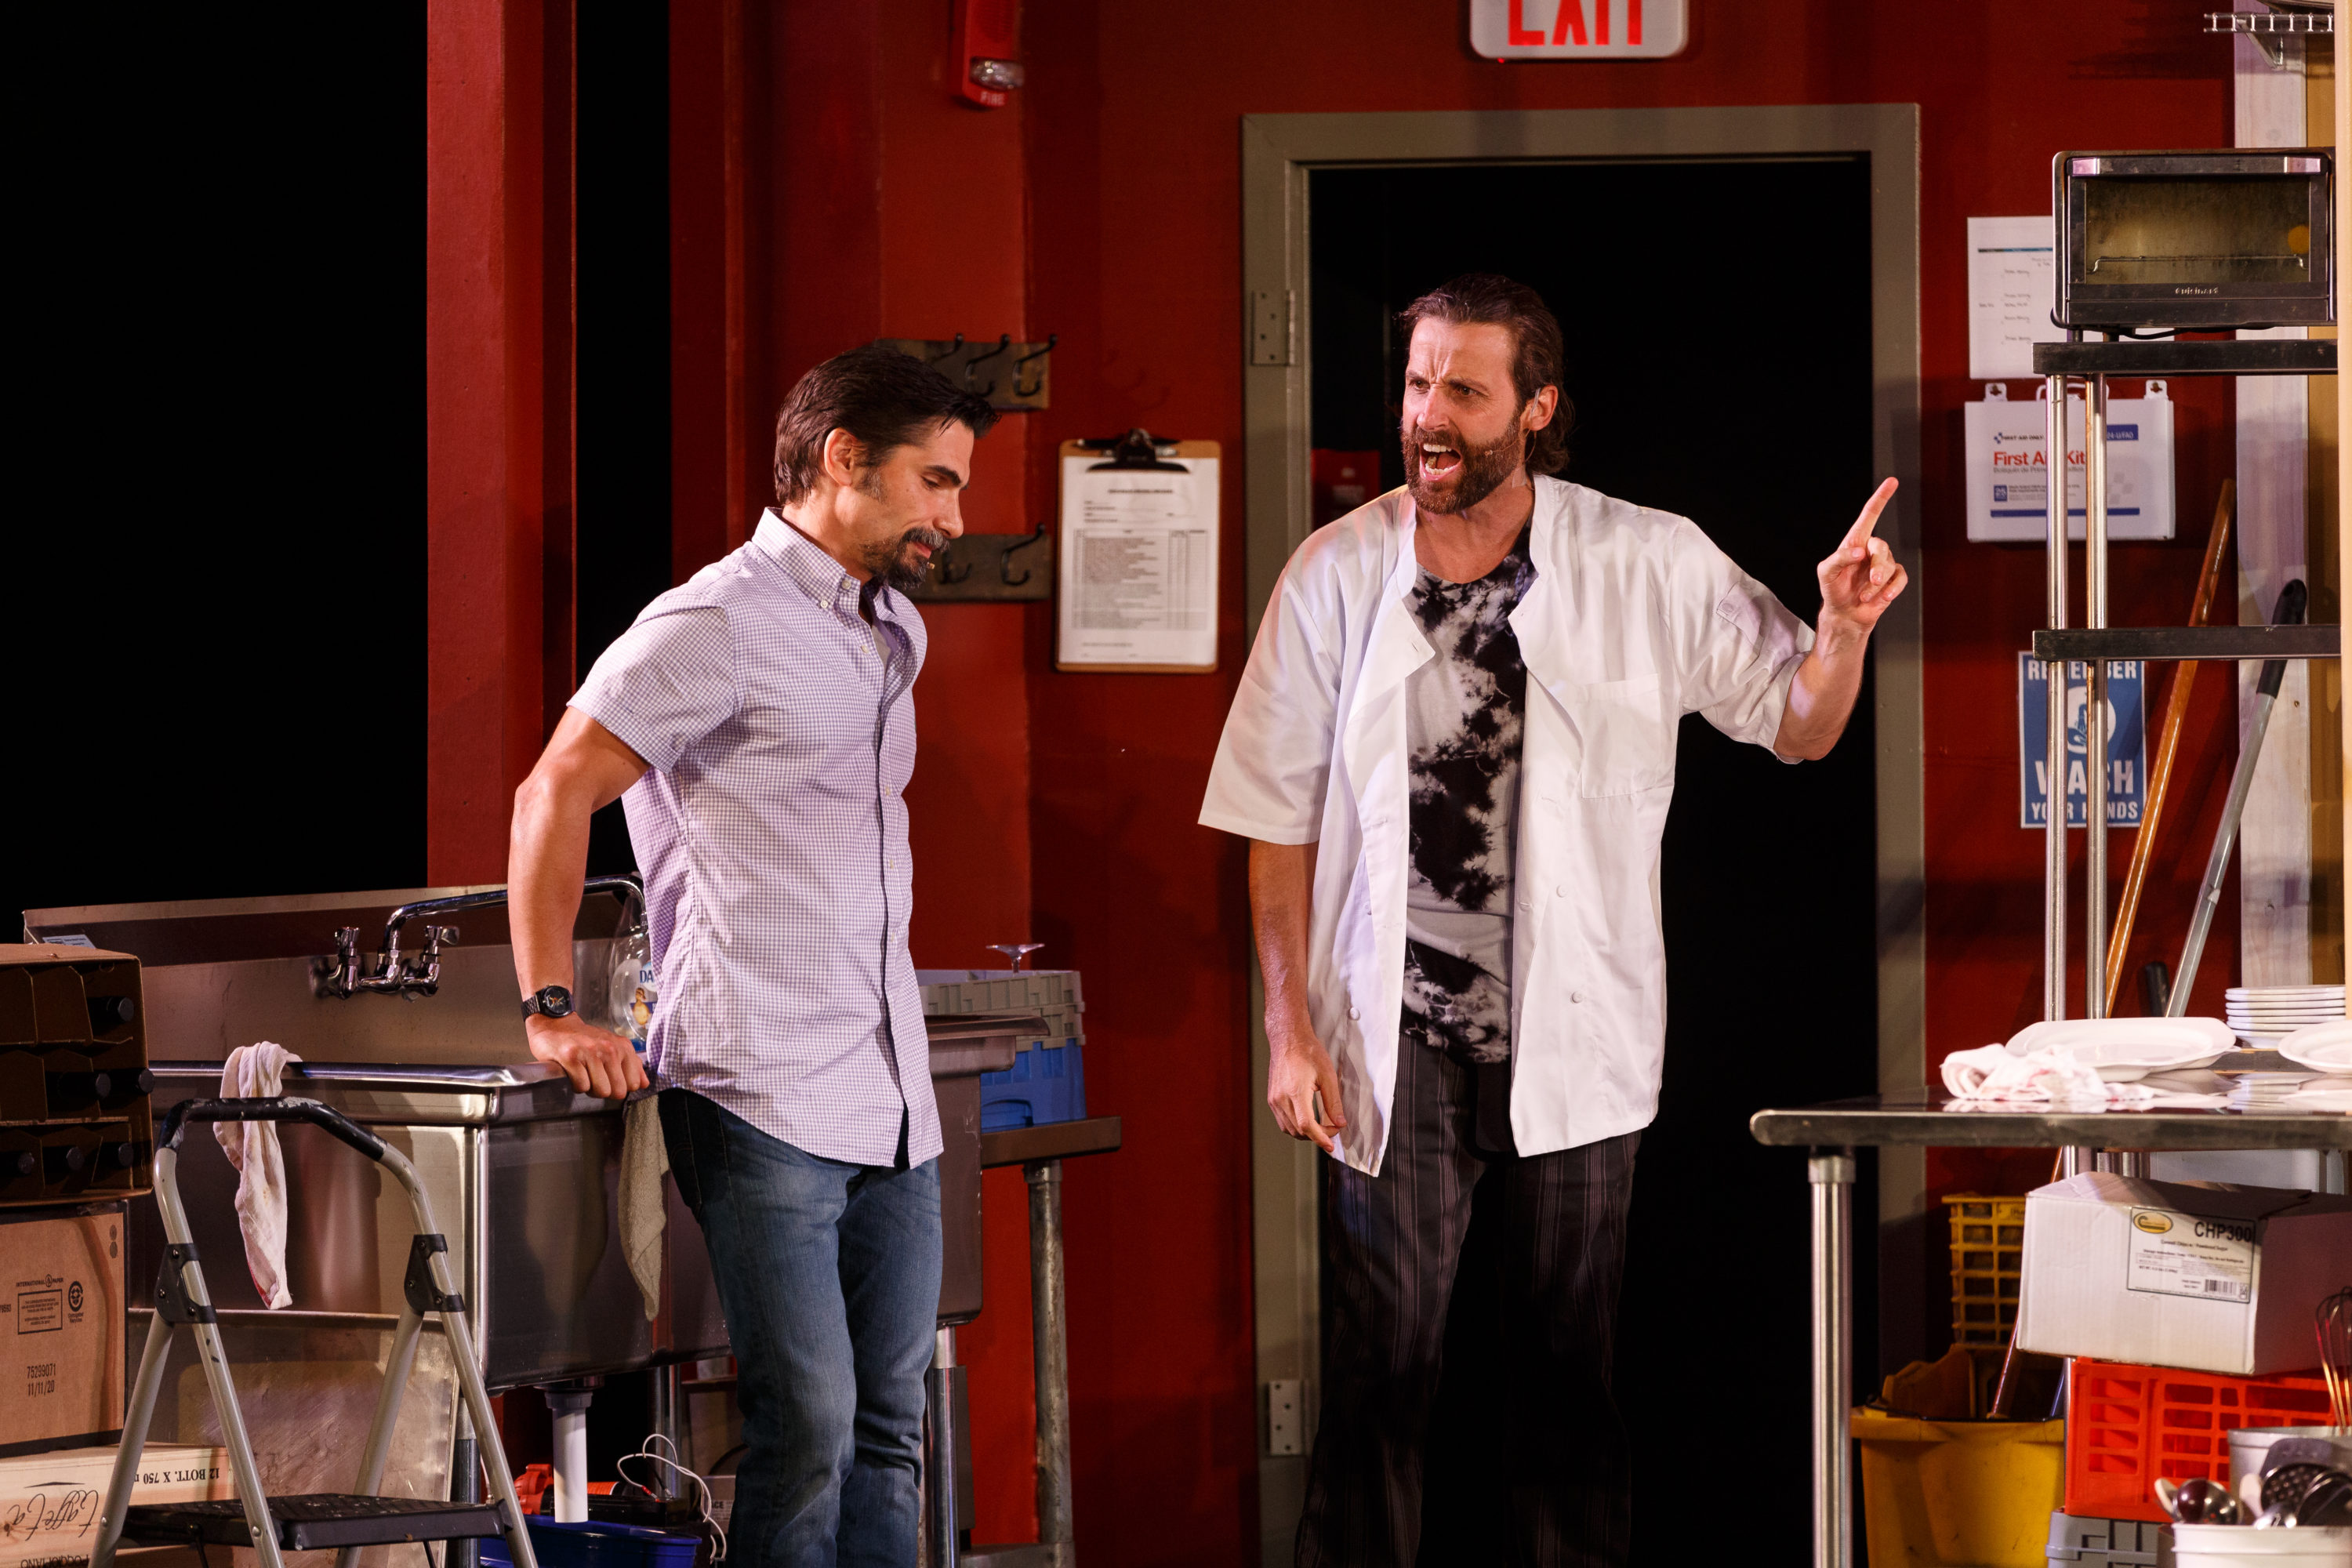 """Matt Monaco and James Louis Wagner argue about the philosophy of cooking in Theresa Rebeck's """"Seared."""" Gloucester Stage Company is producing the play at Windhover Arts Center in Rockport. (Courtesy Jason Grow)"""